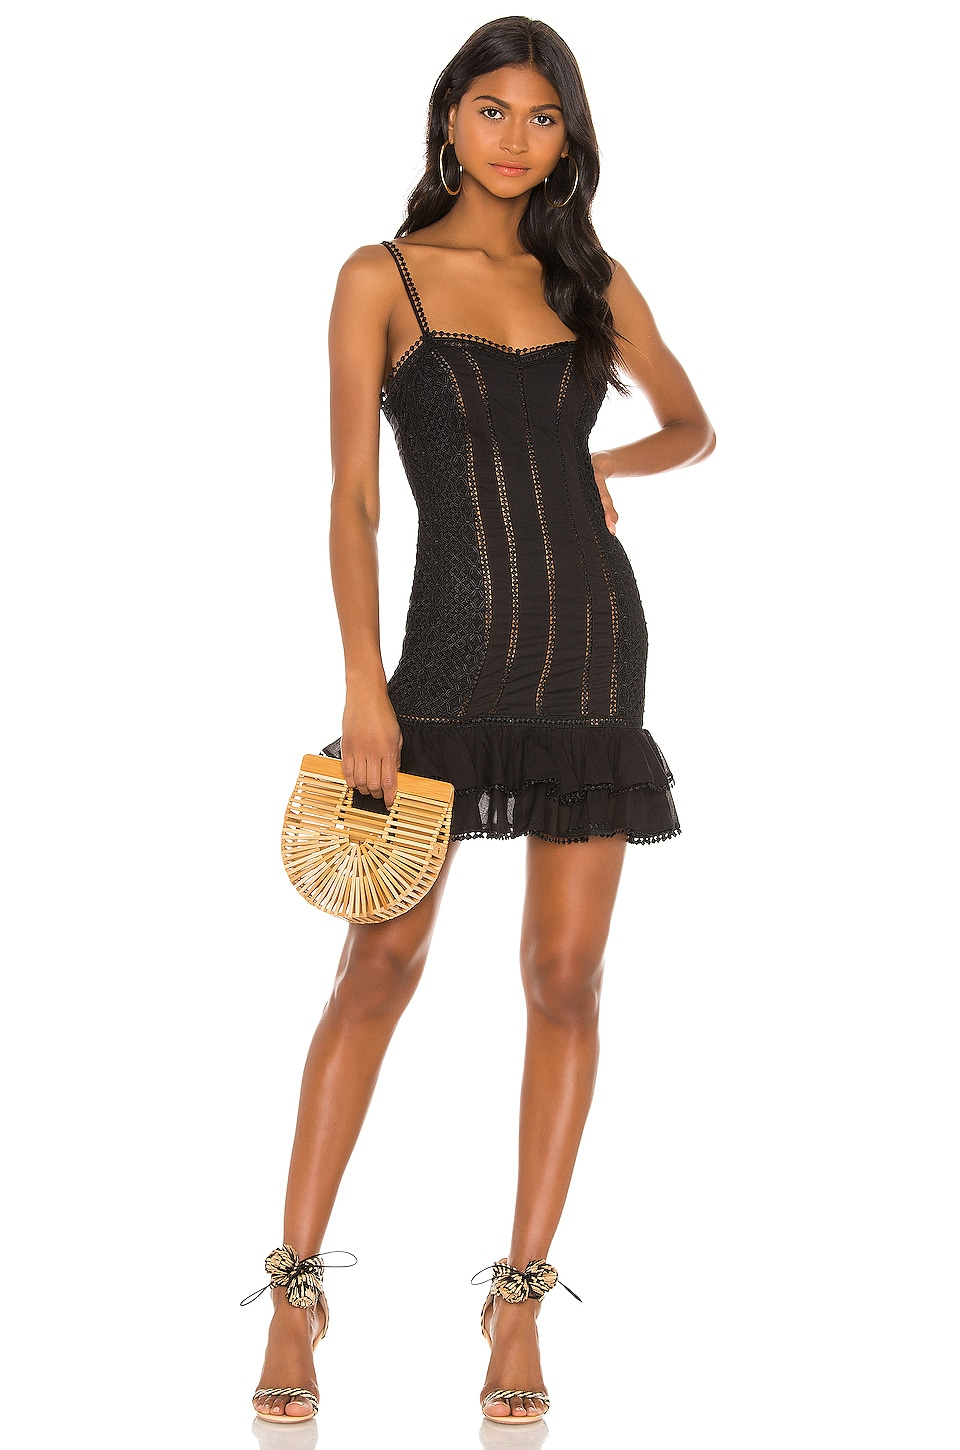 Charo Ruiz Ibiza Rida Dress in Black